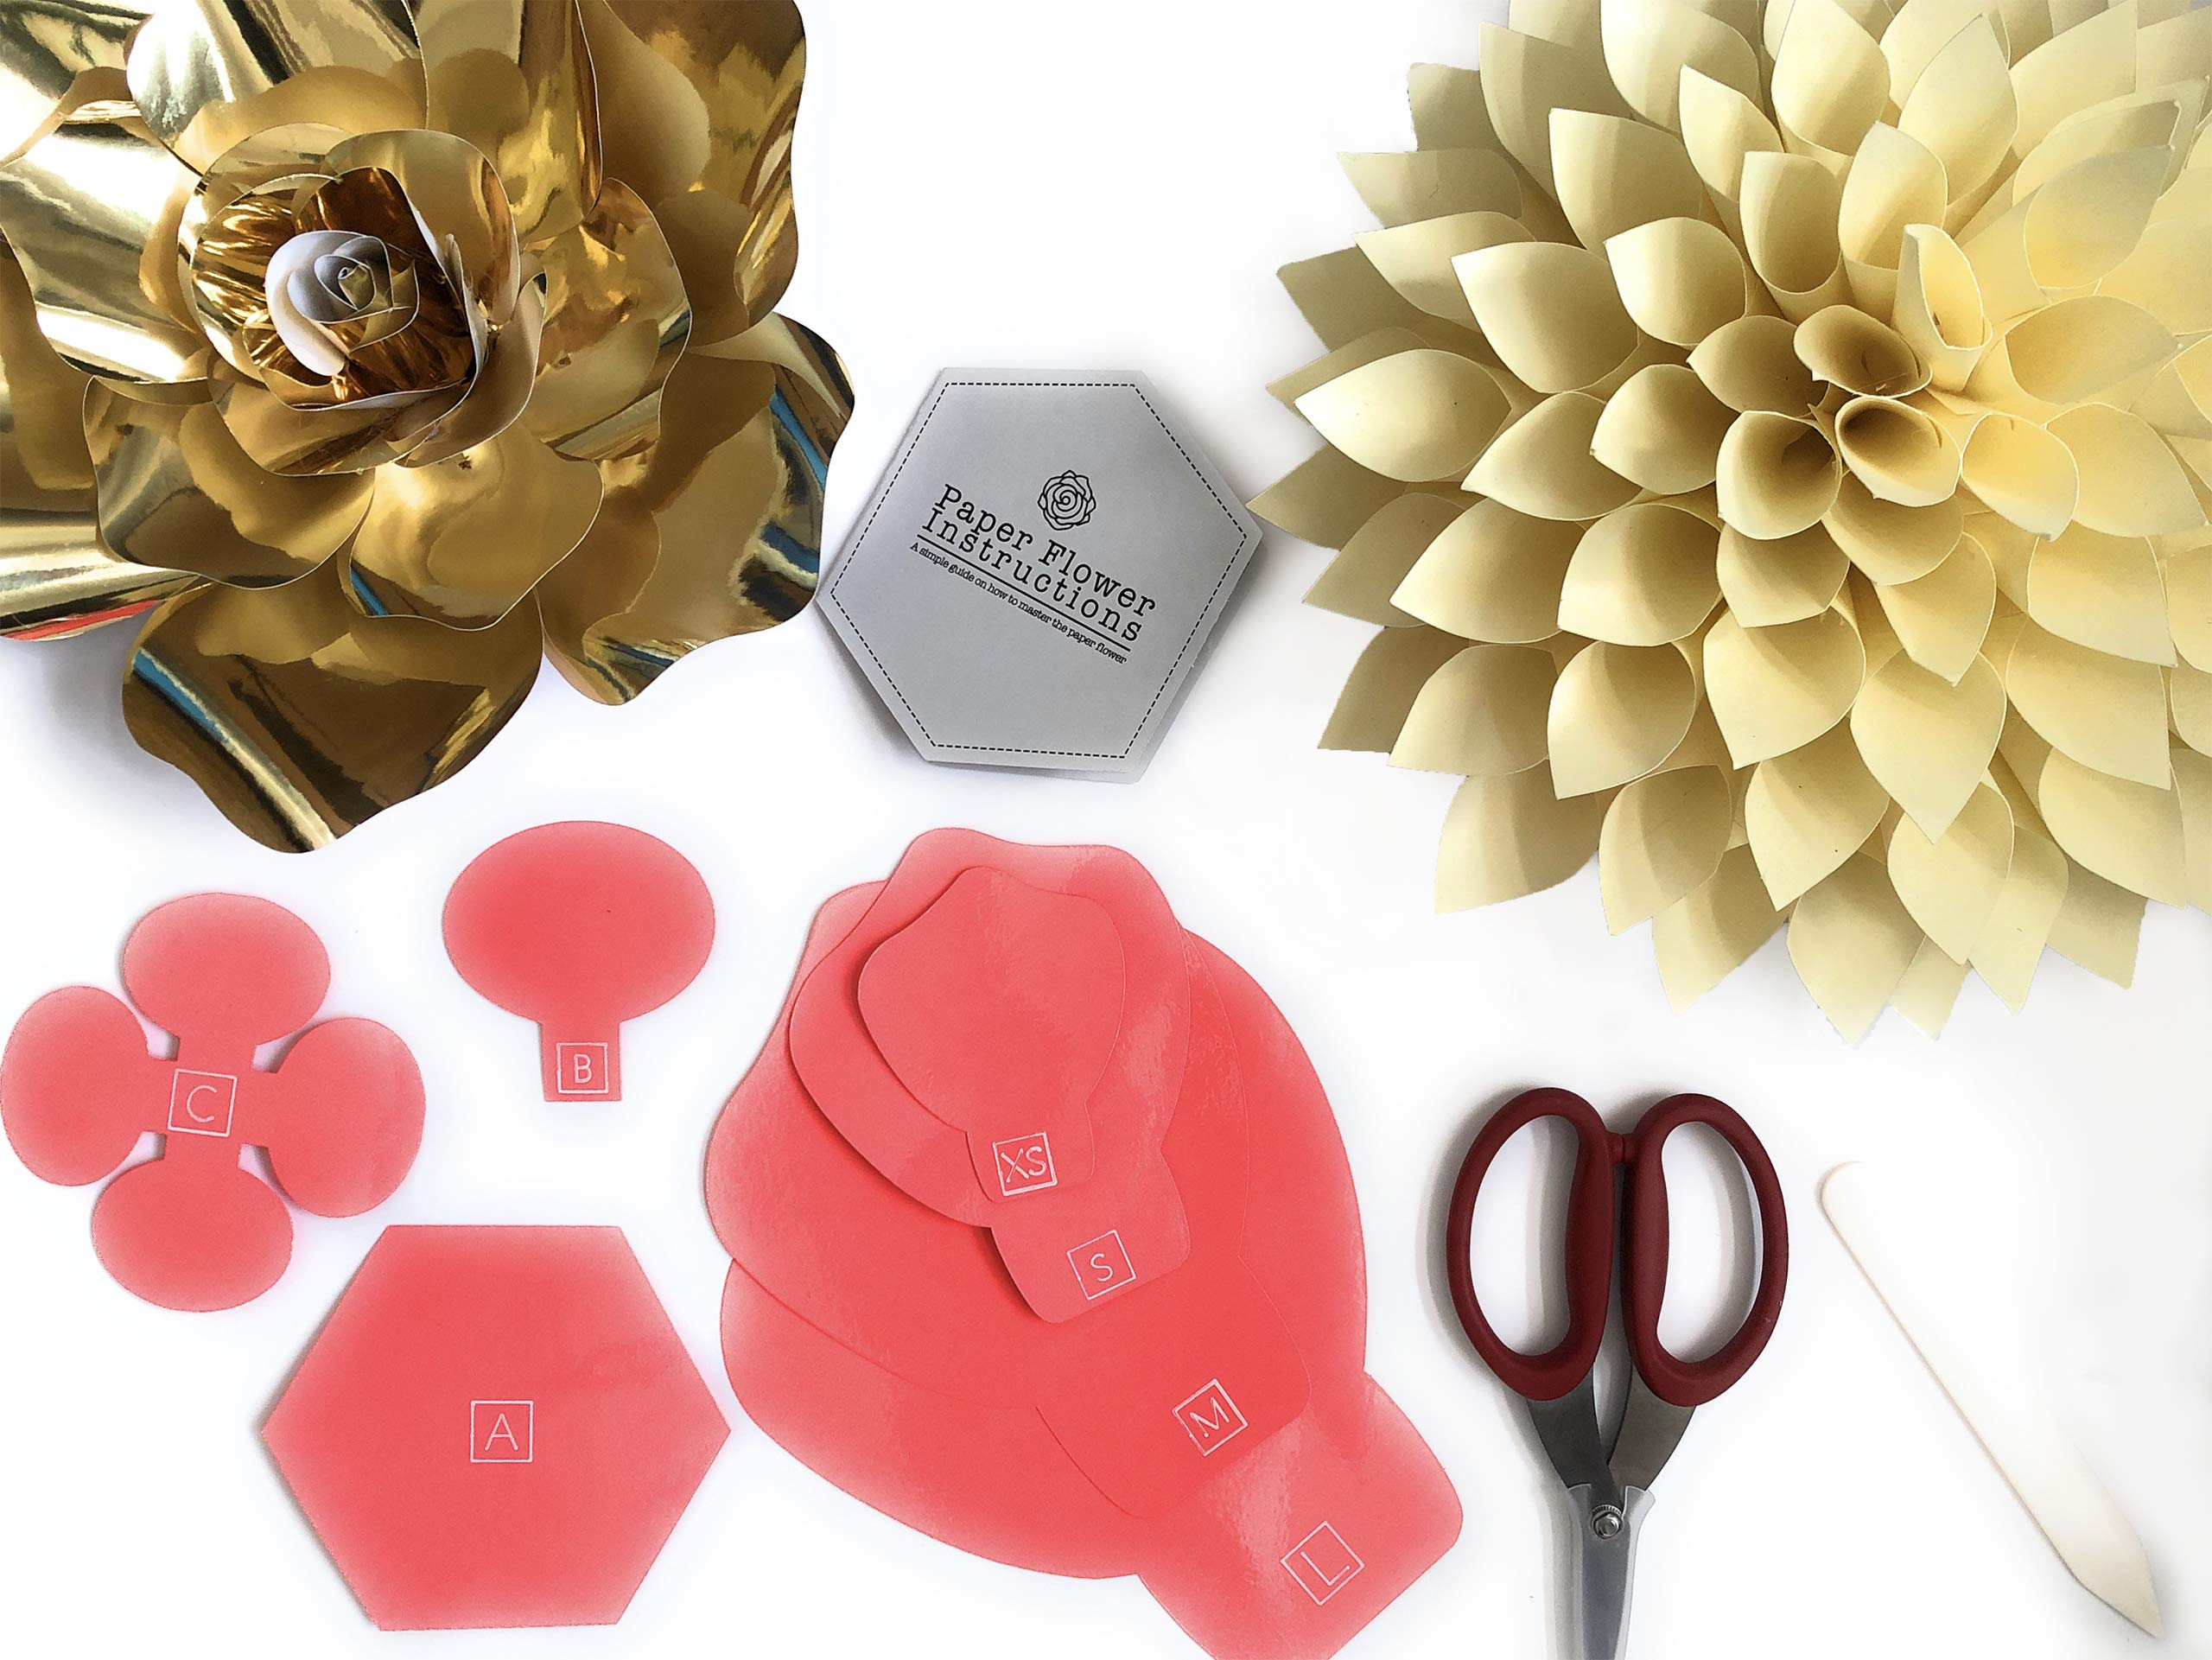 Paper Flower Template Kit - DIY Wall Decorations - Instructions Included - 8 Piece Set by retail parity (Image #2)